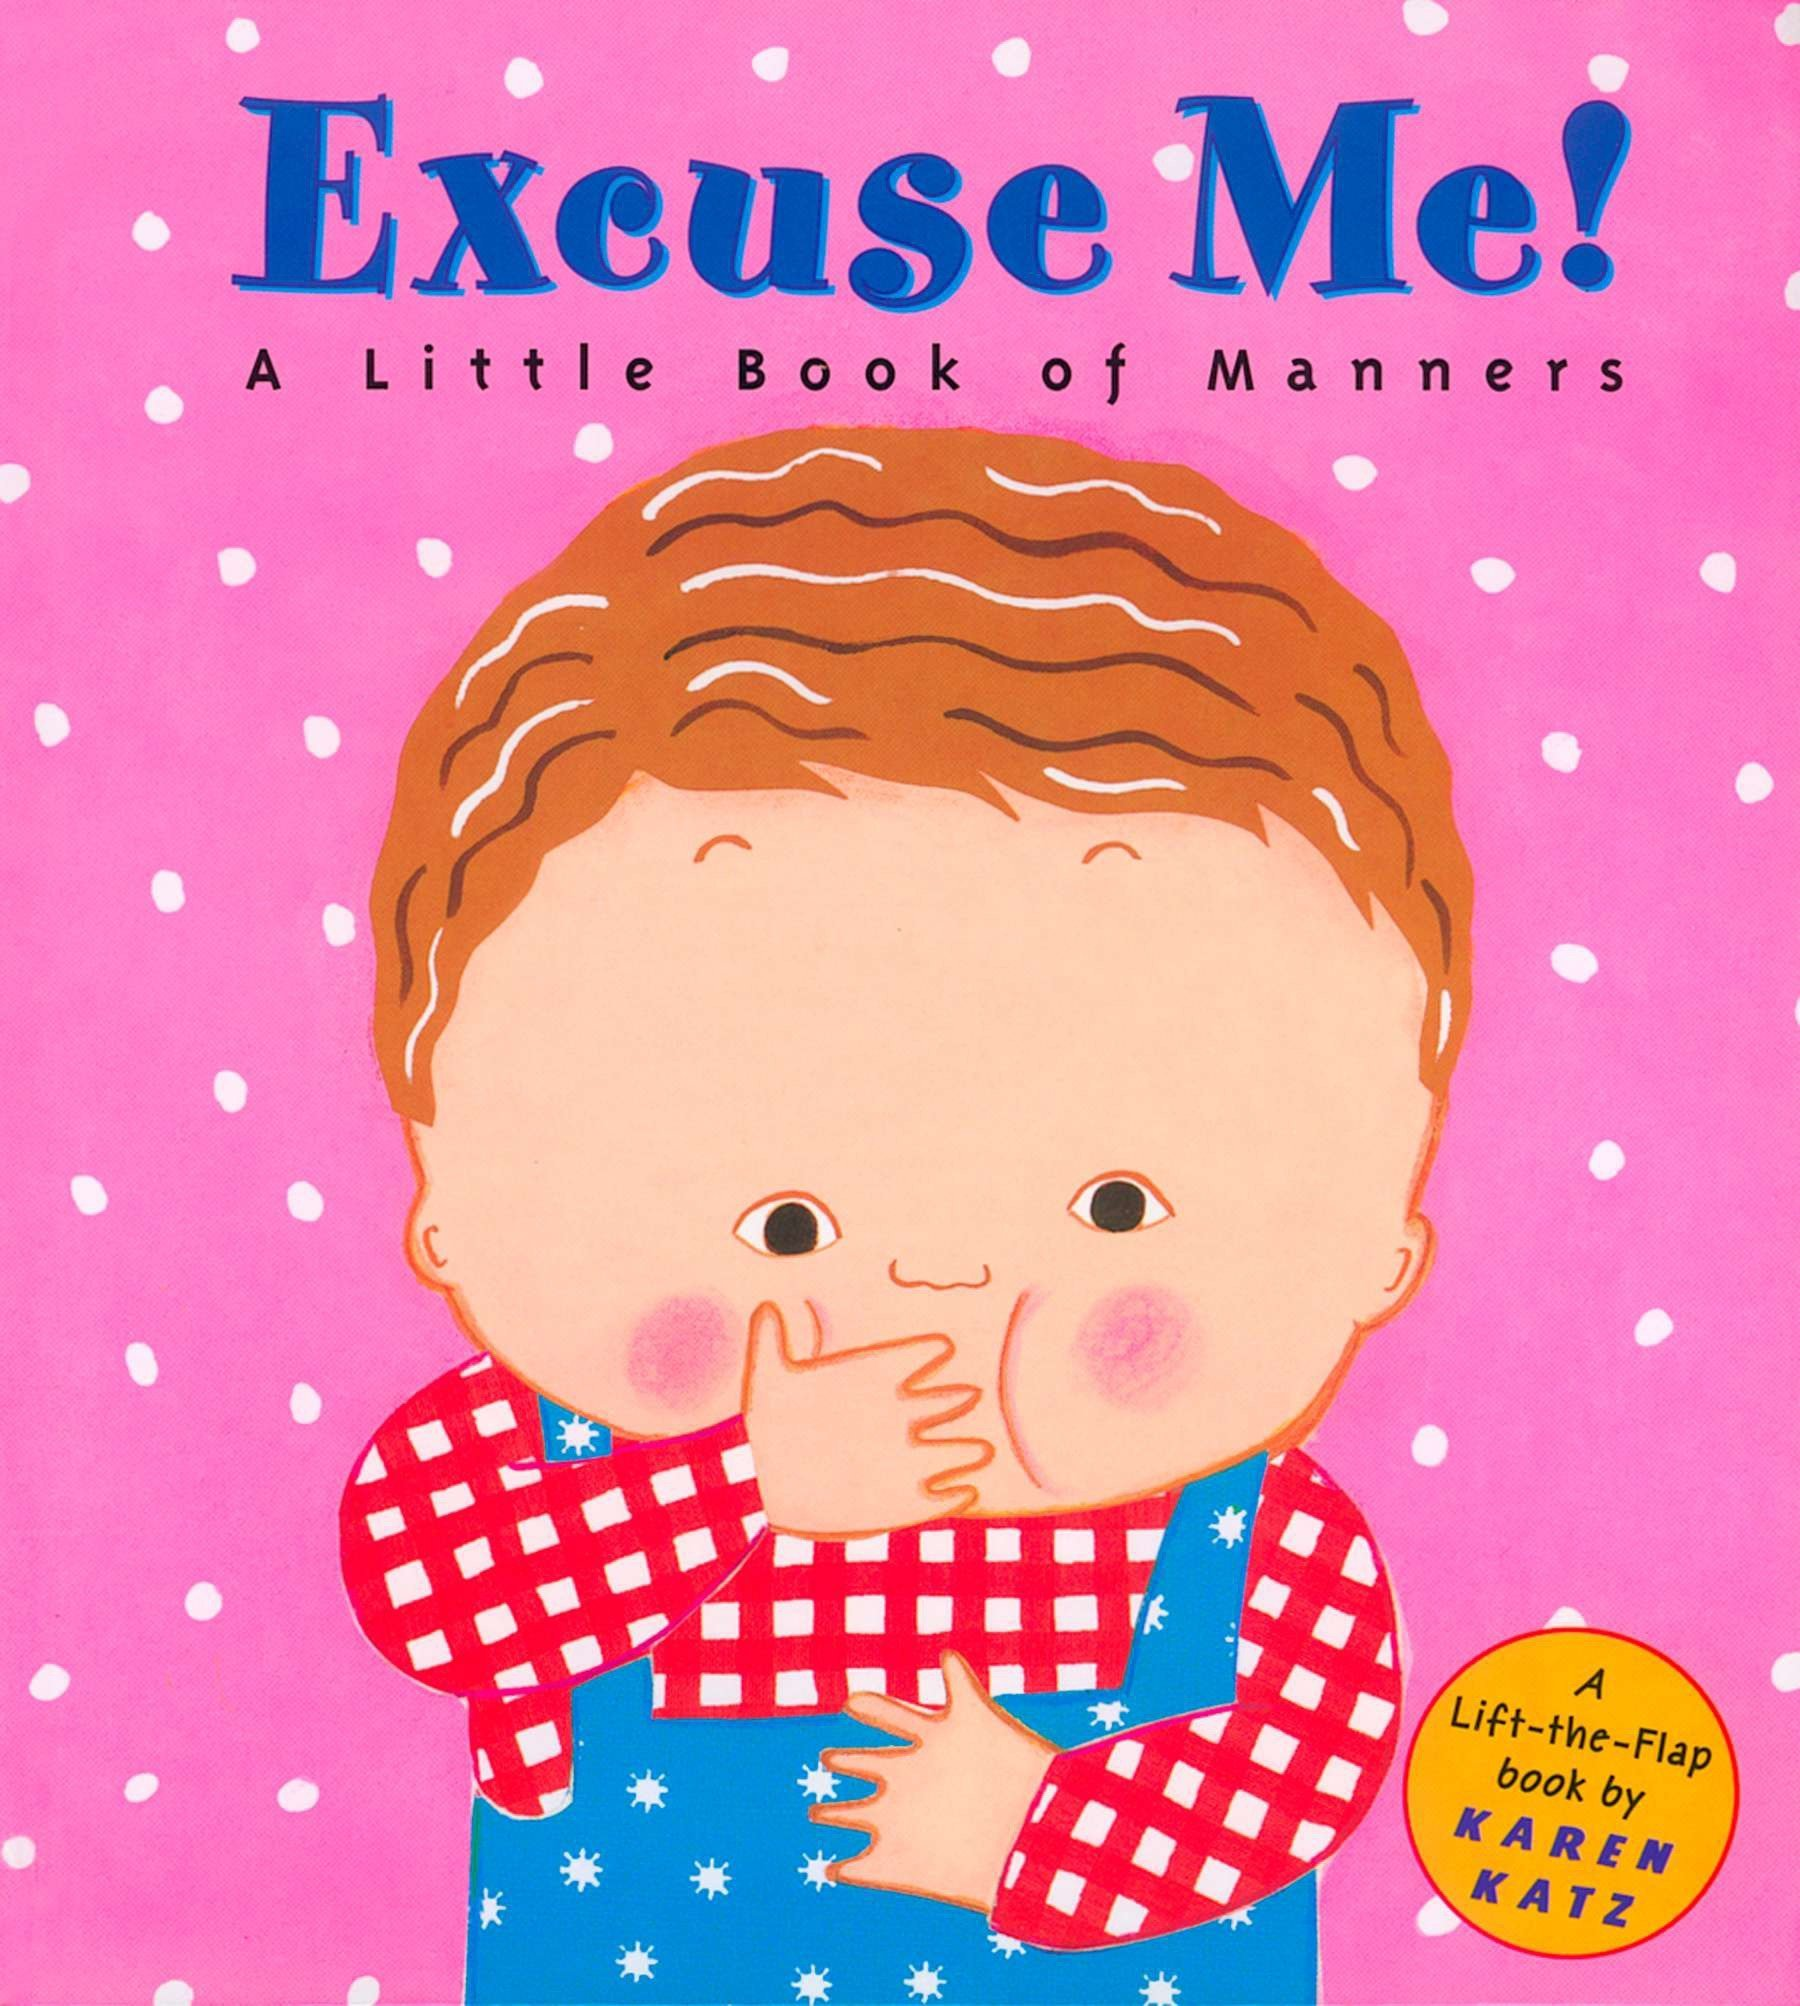 Excuse Me!: a Little Book of Manners (Lift-The-Flap Book)